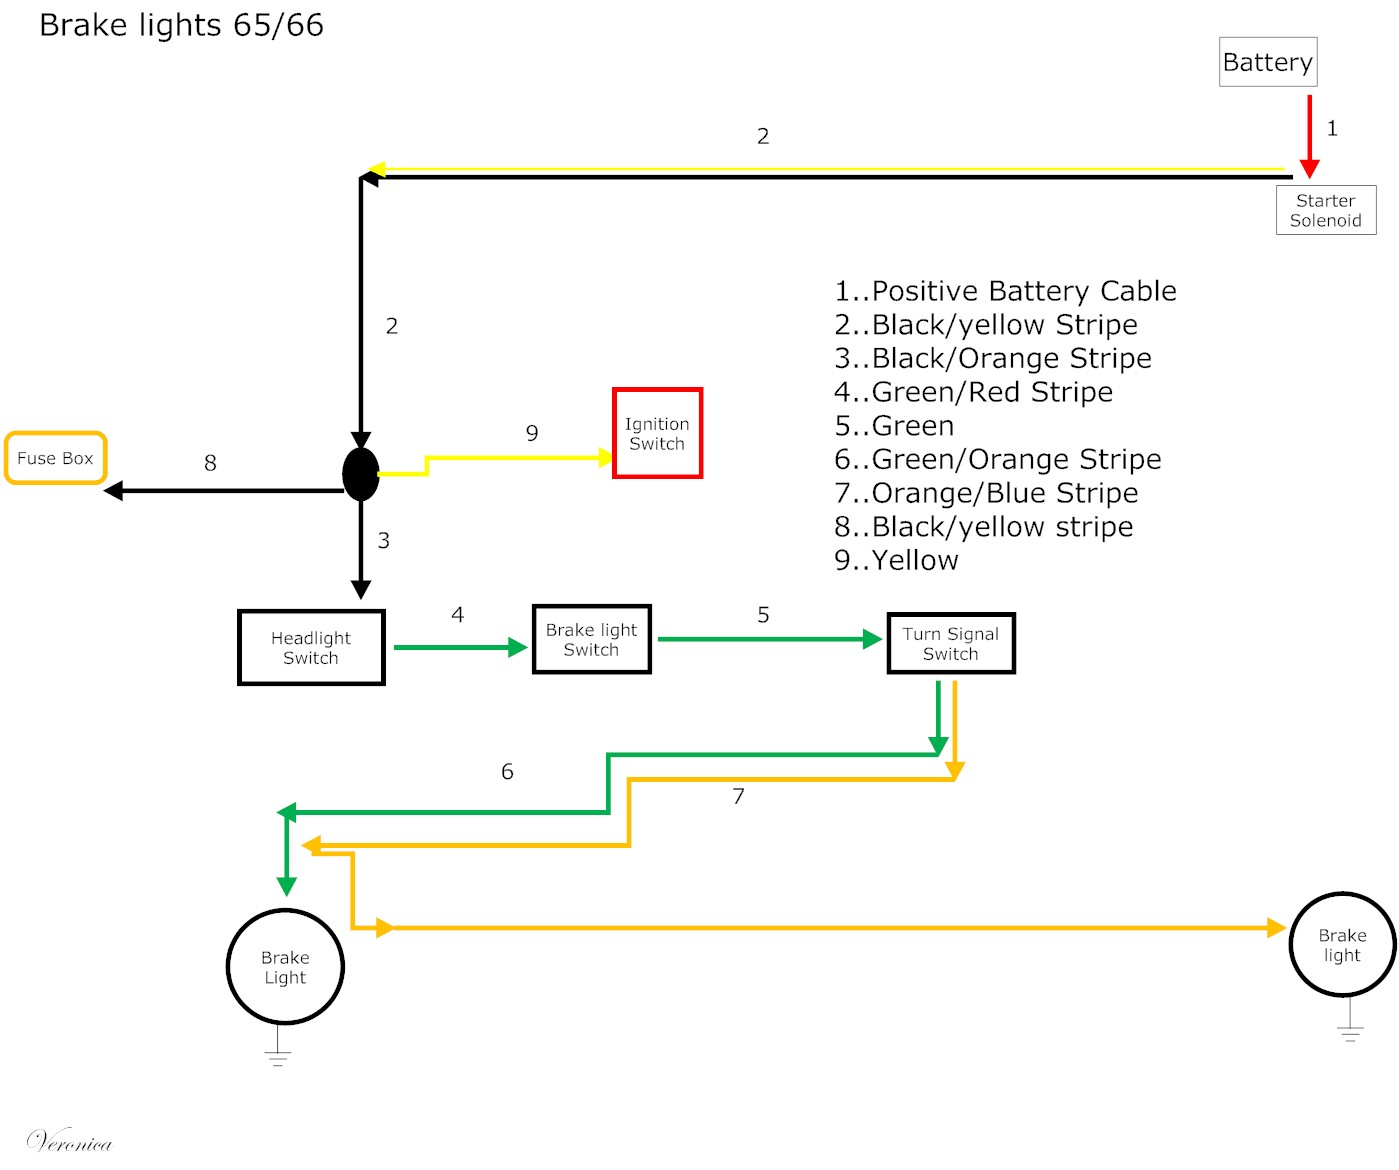 2001 F250 Tail Light Wiring Diagram Trusted Wiring Diagram Camaro Wiring  Schematic 2001 Camaro Alternator Wiring Diagram